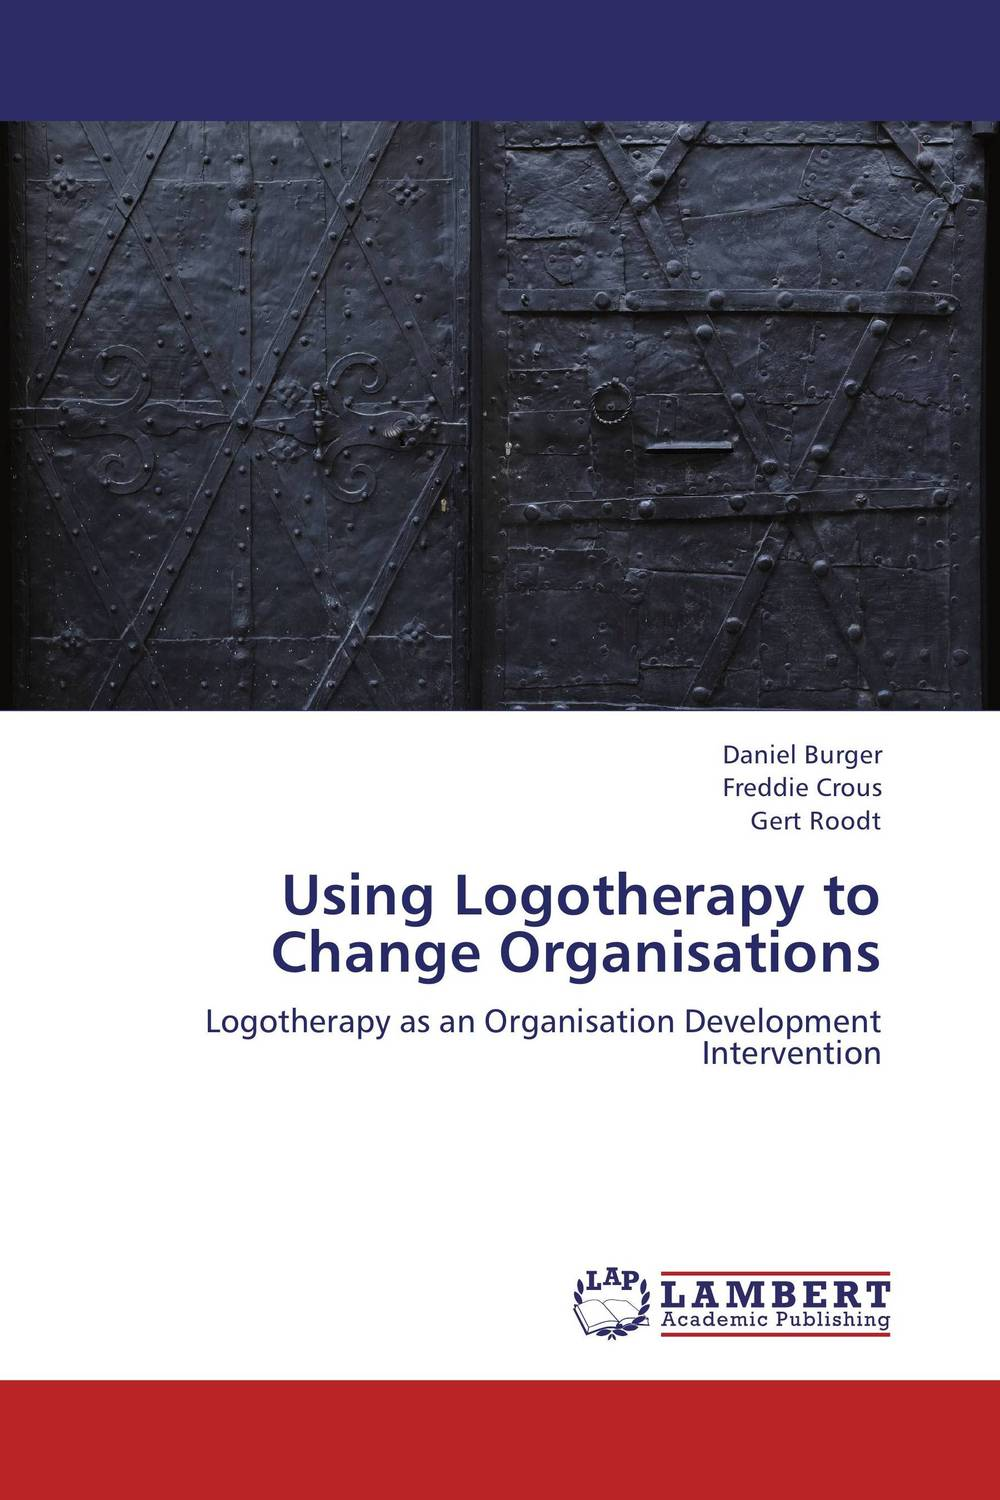 Using Logotherapy to Change Organisations washington a maryland politicians threat to sue a 2